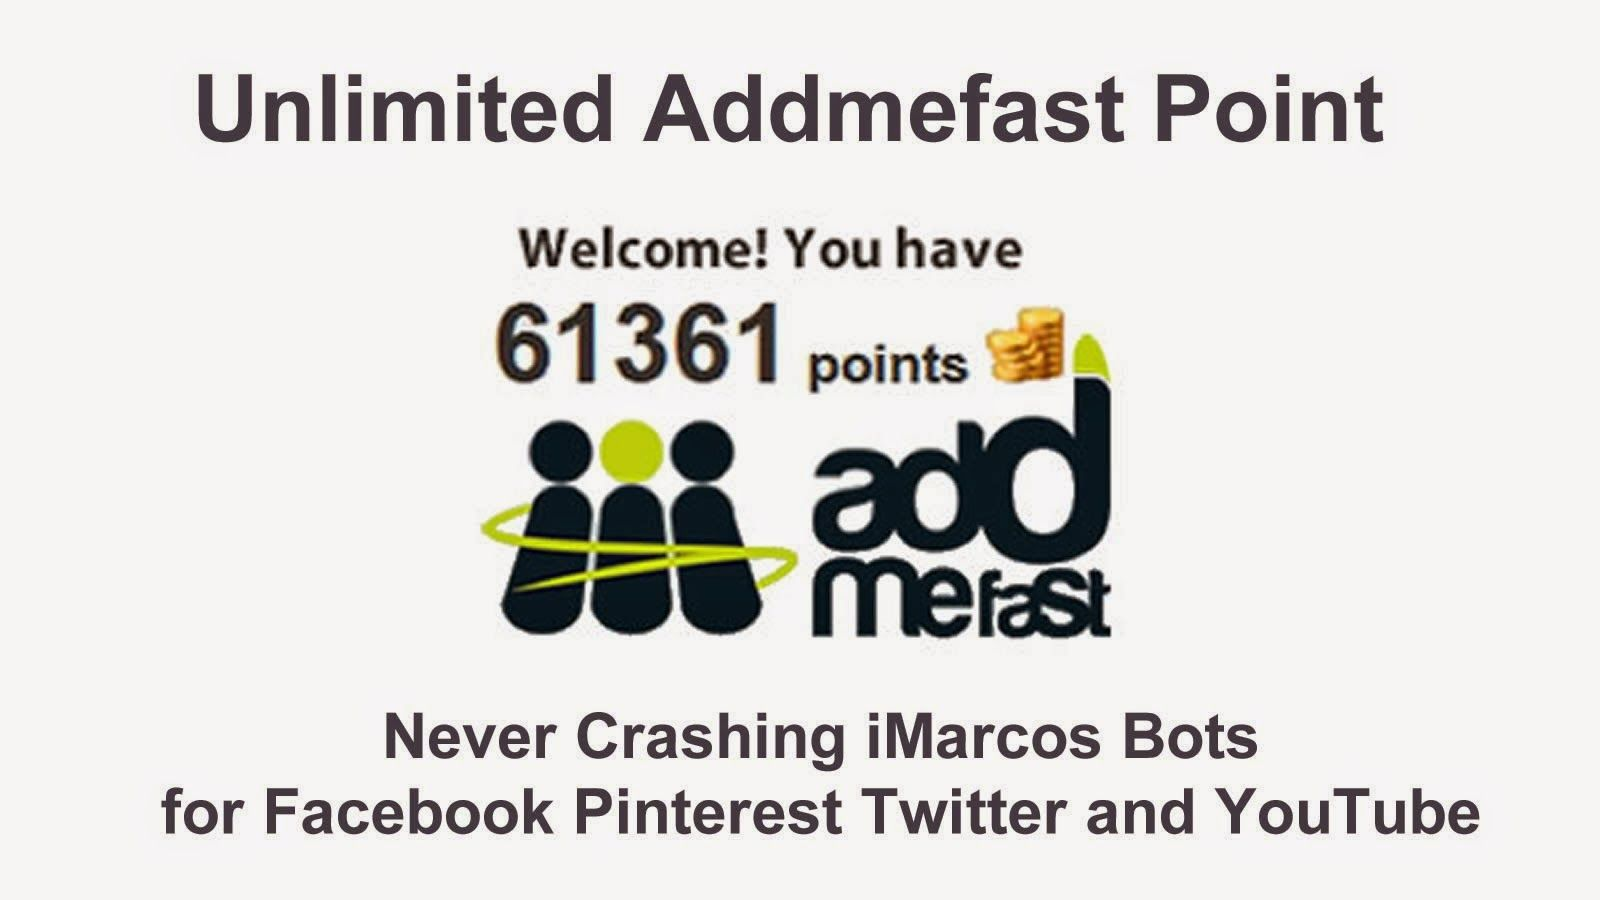 Hacking Add Me Fast Using Imacros Bot Working 100 Increase Facebook Likes Ads Facebook Followers